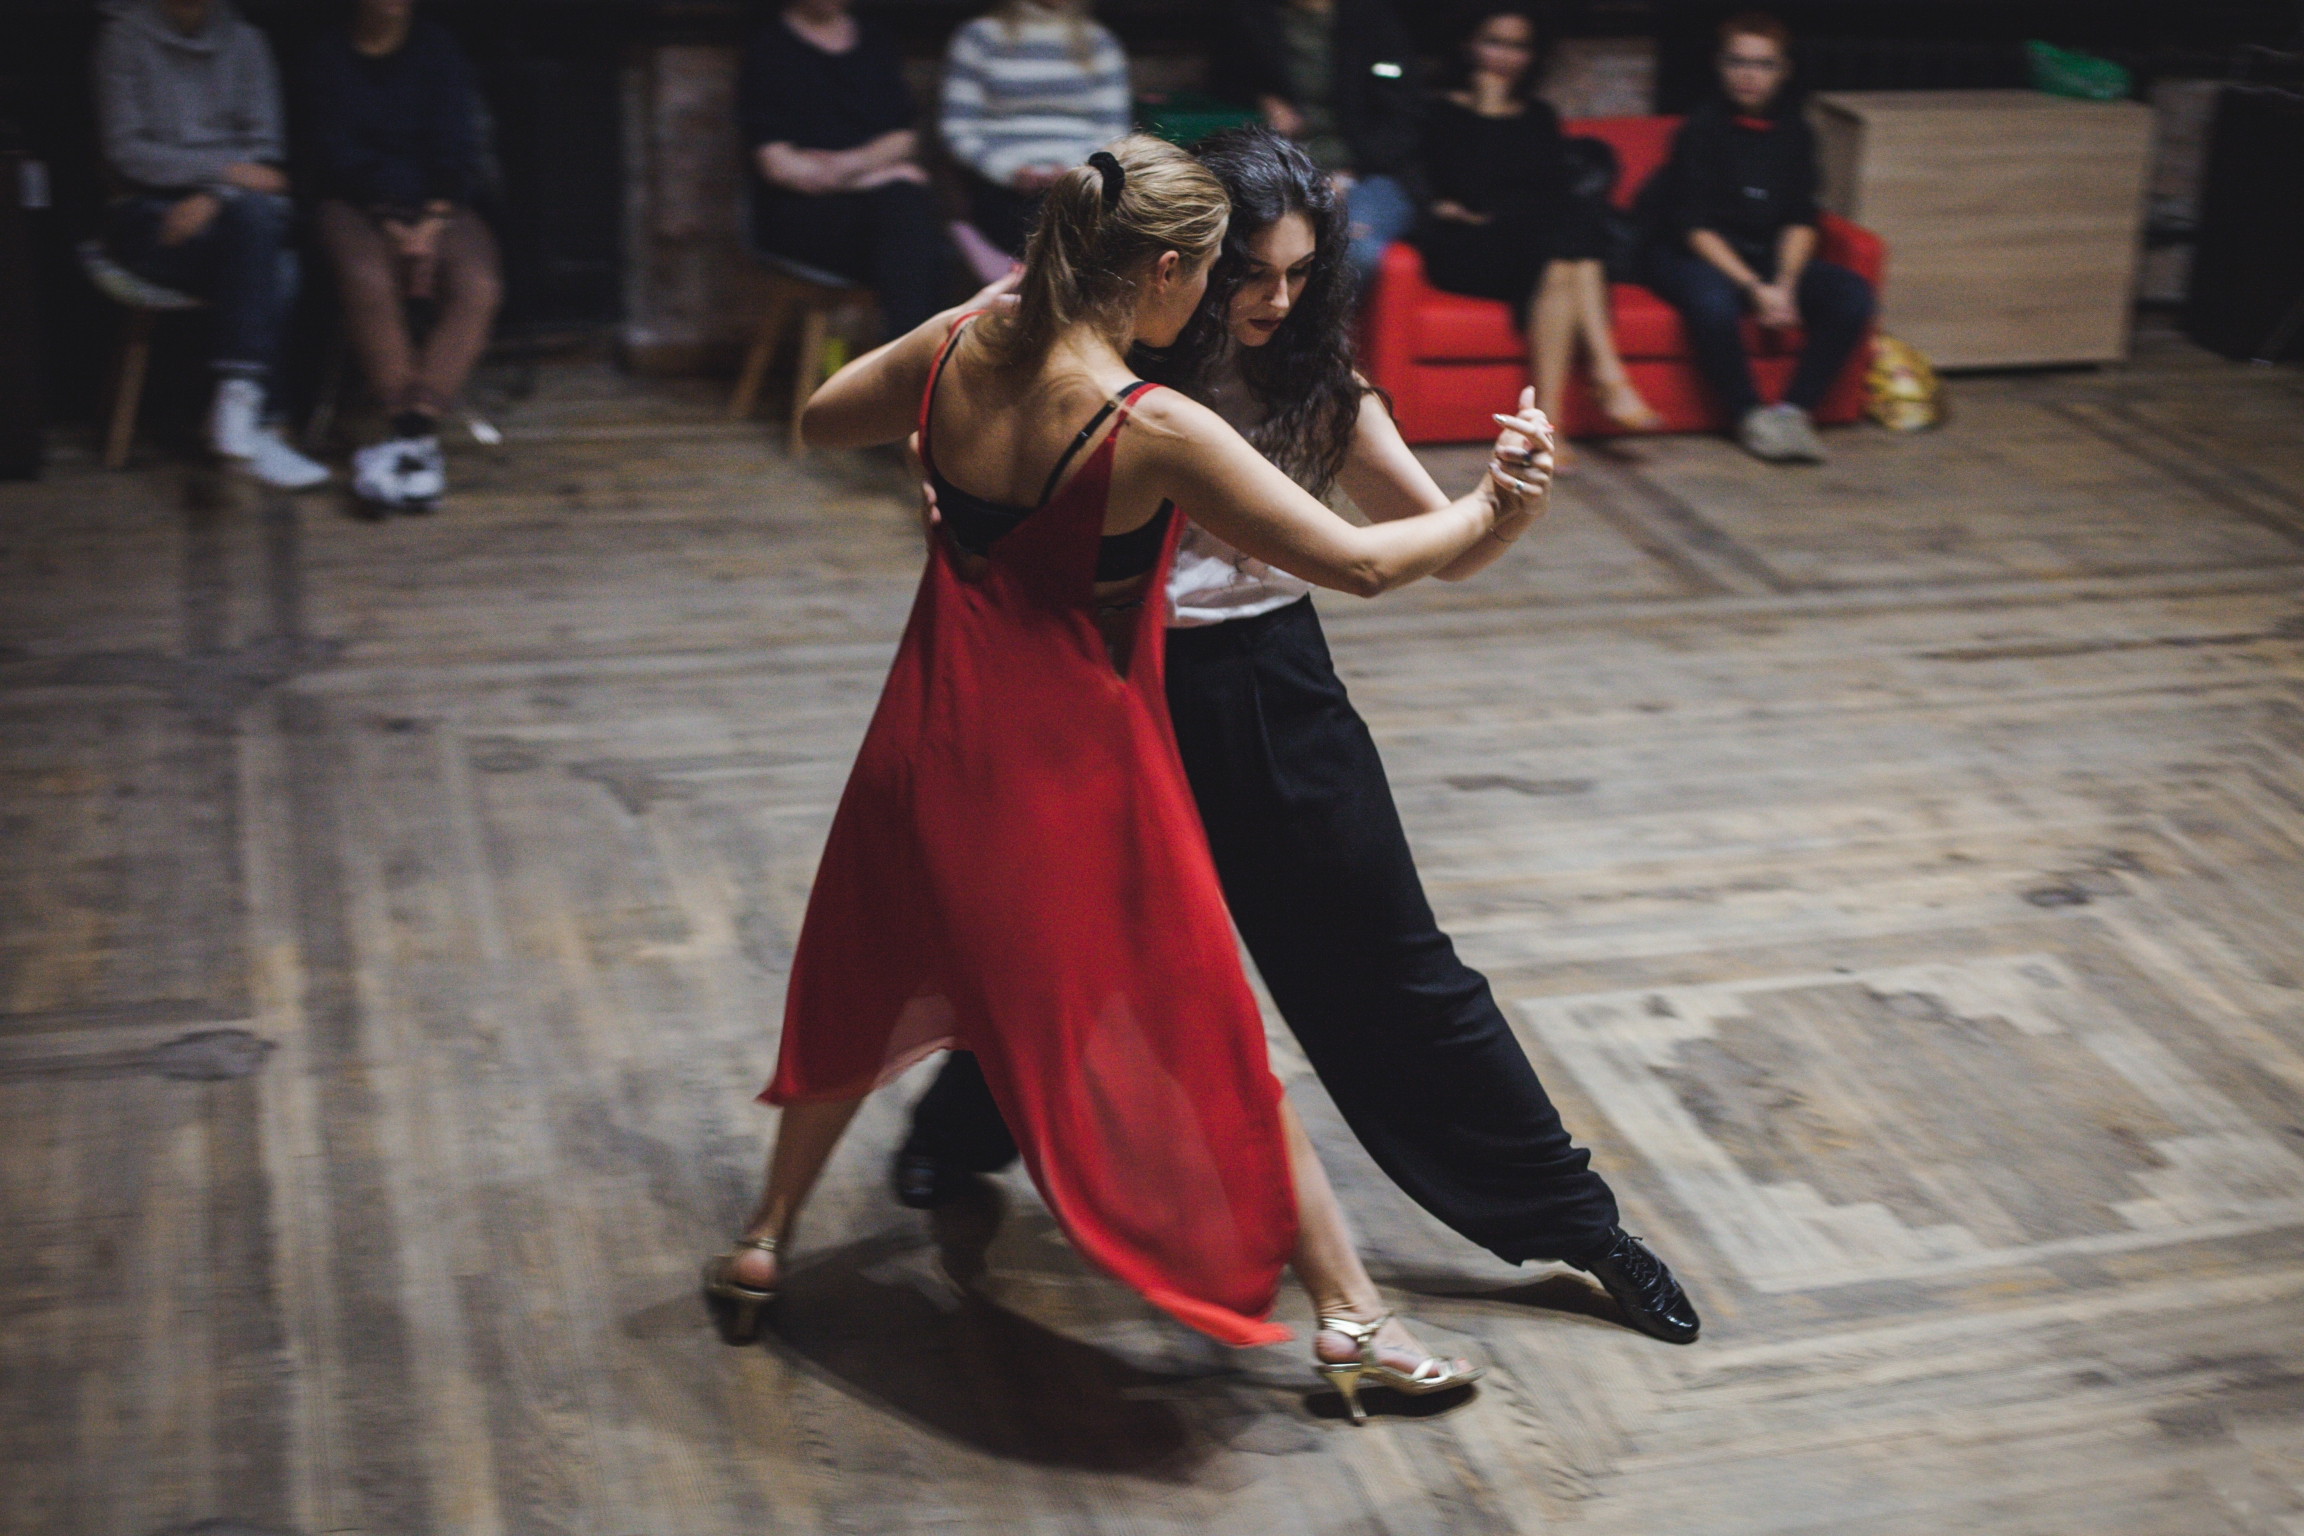 A woman in red dances with a woman in black at a dance studio